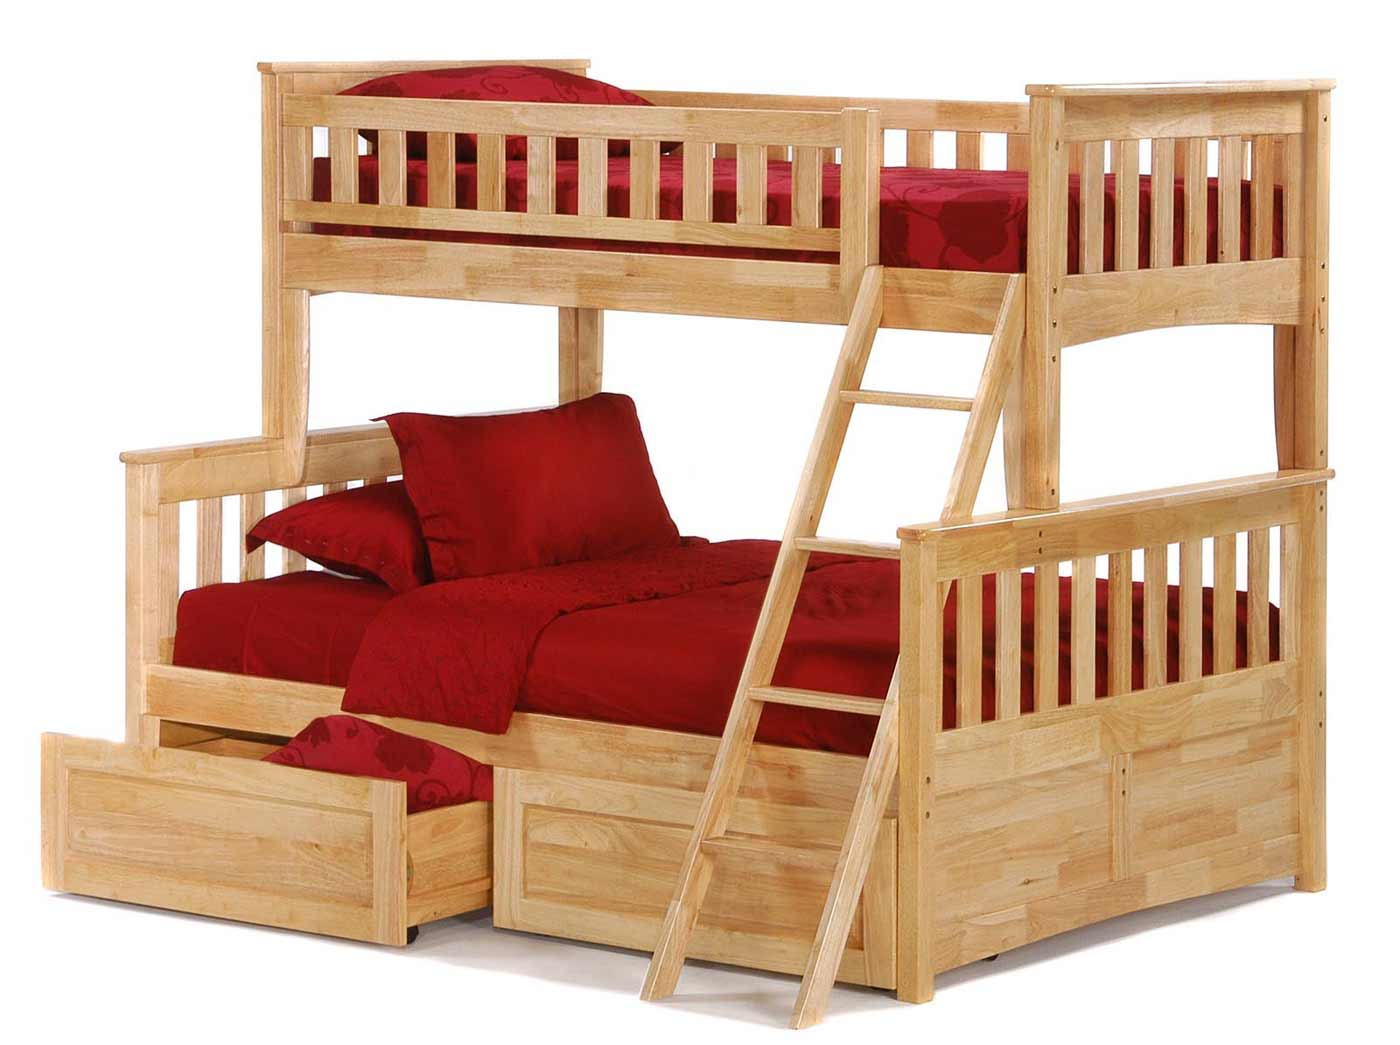 Image of: Adult Bunk Beds Red